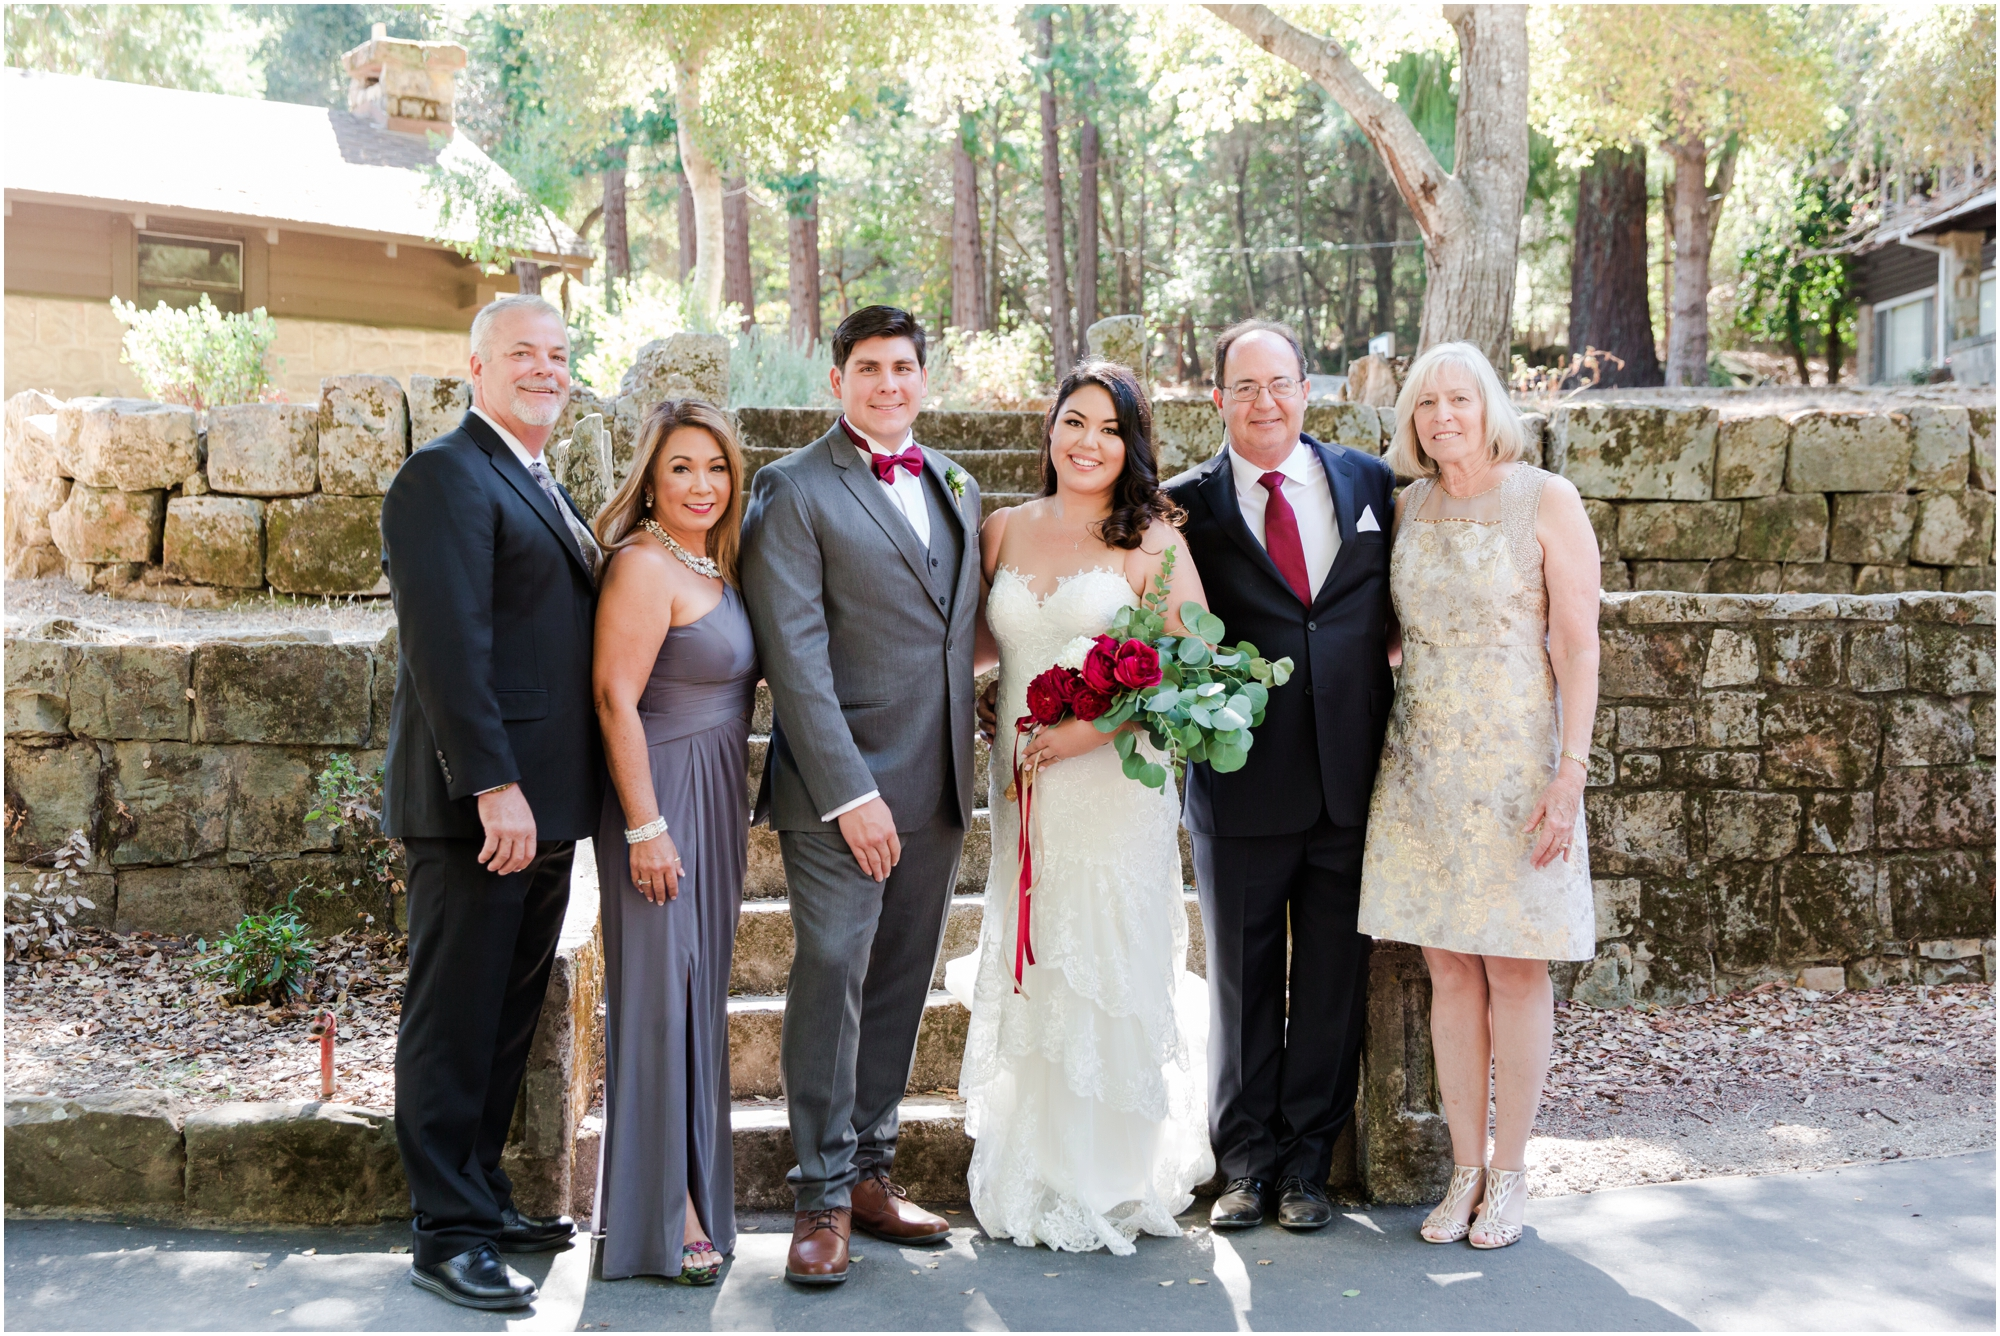 Sanborn Park Saratoga wedding pictures by Briana Calderon Photography_0135.jpg